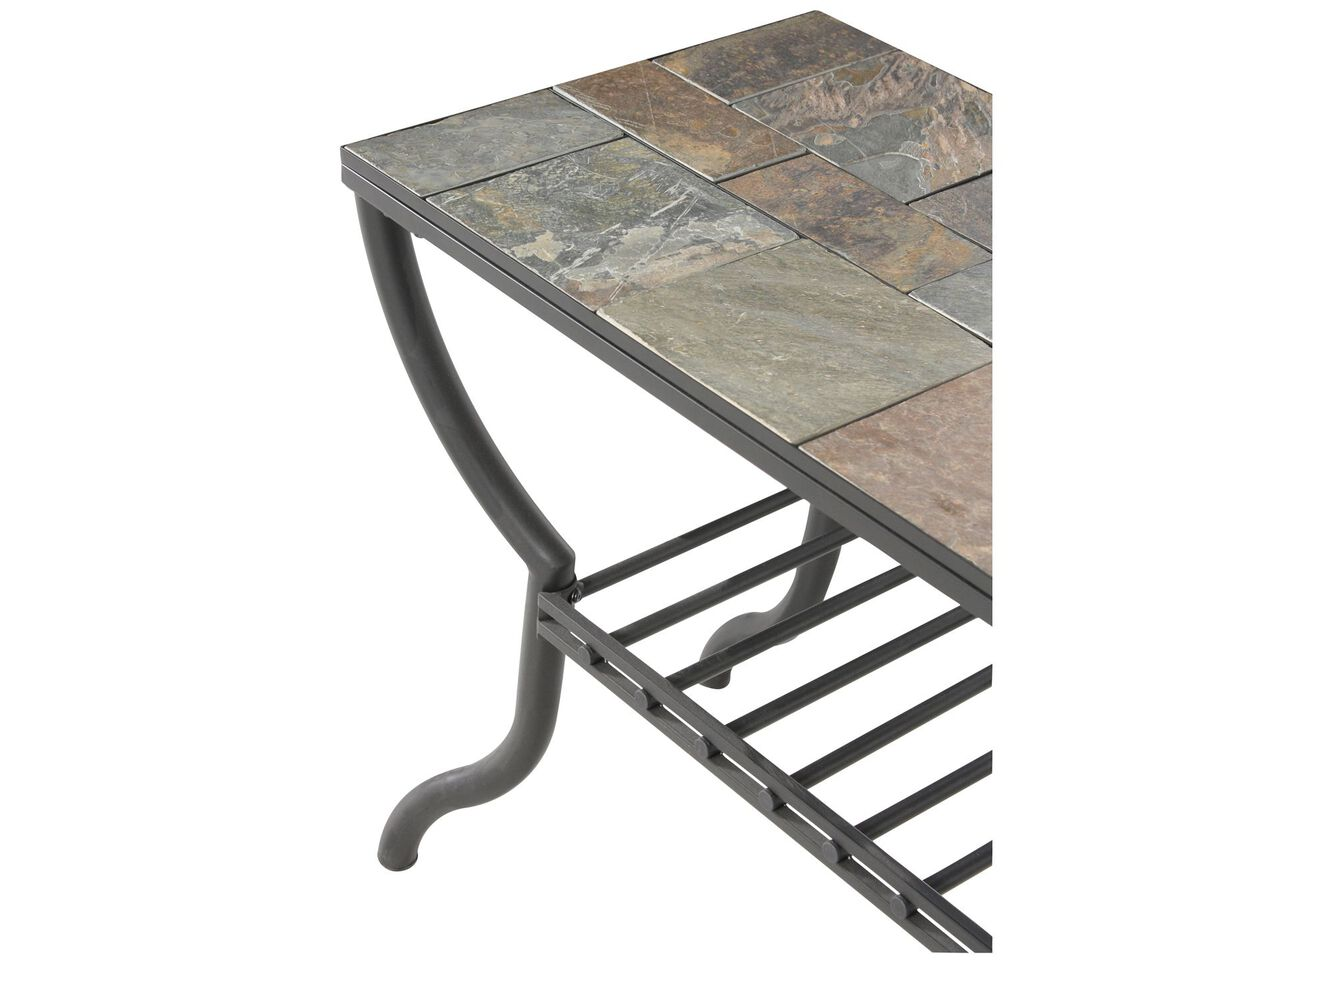 Grilled shelf contemporary sofa table in gun metal mathis grilled shelf contemporary sofa table geotapseo Gallery